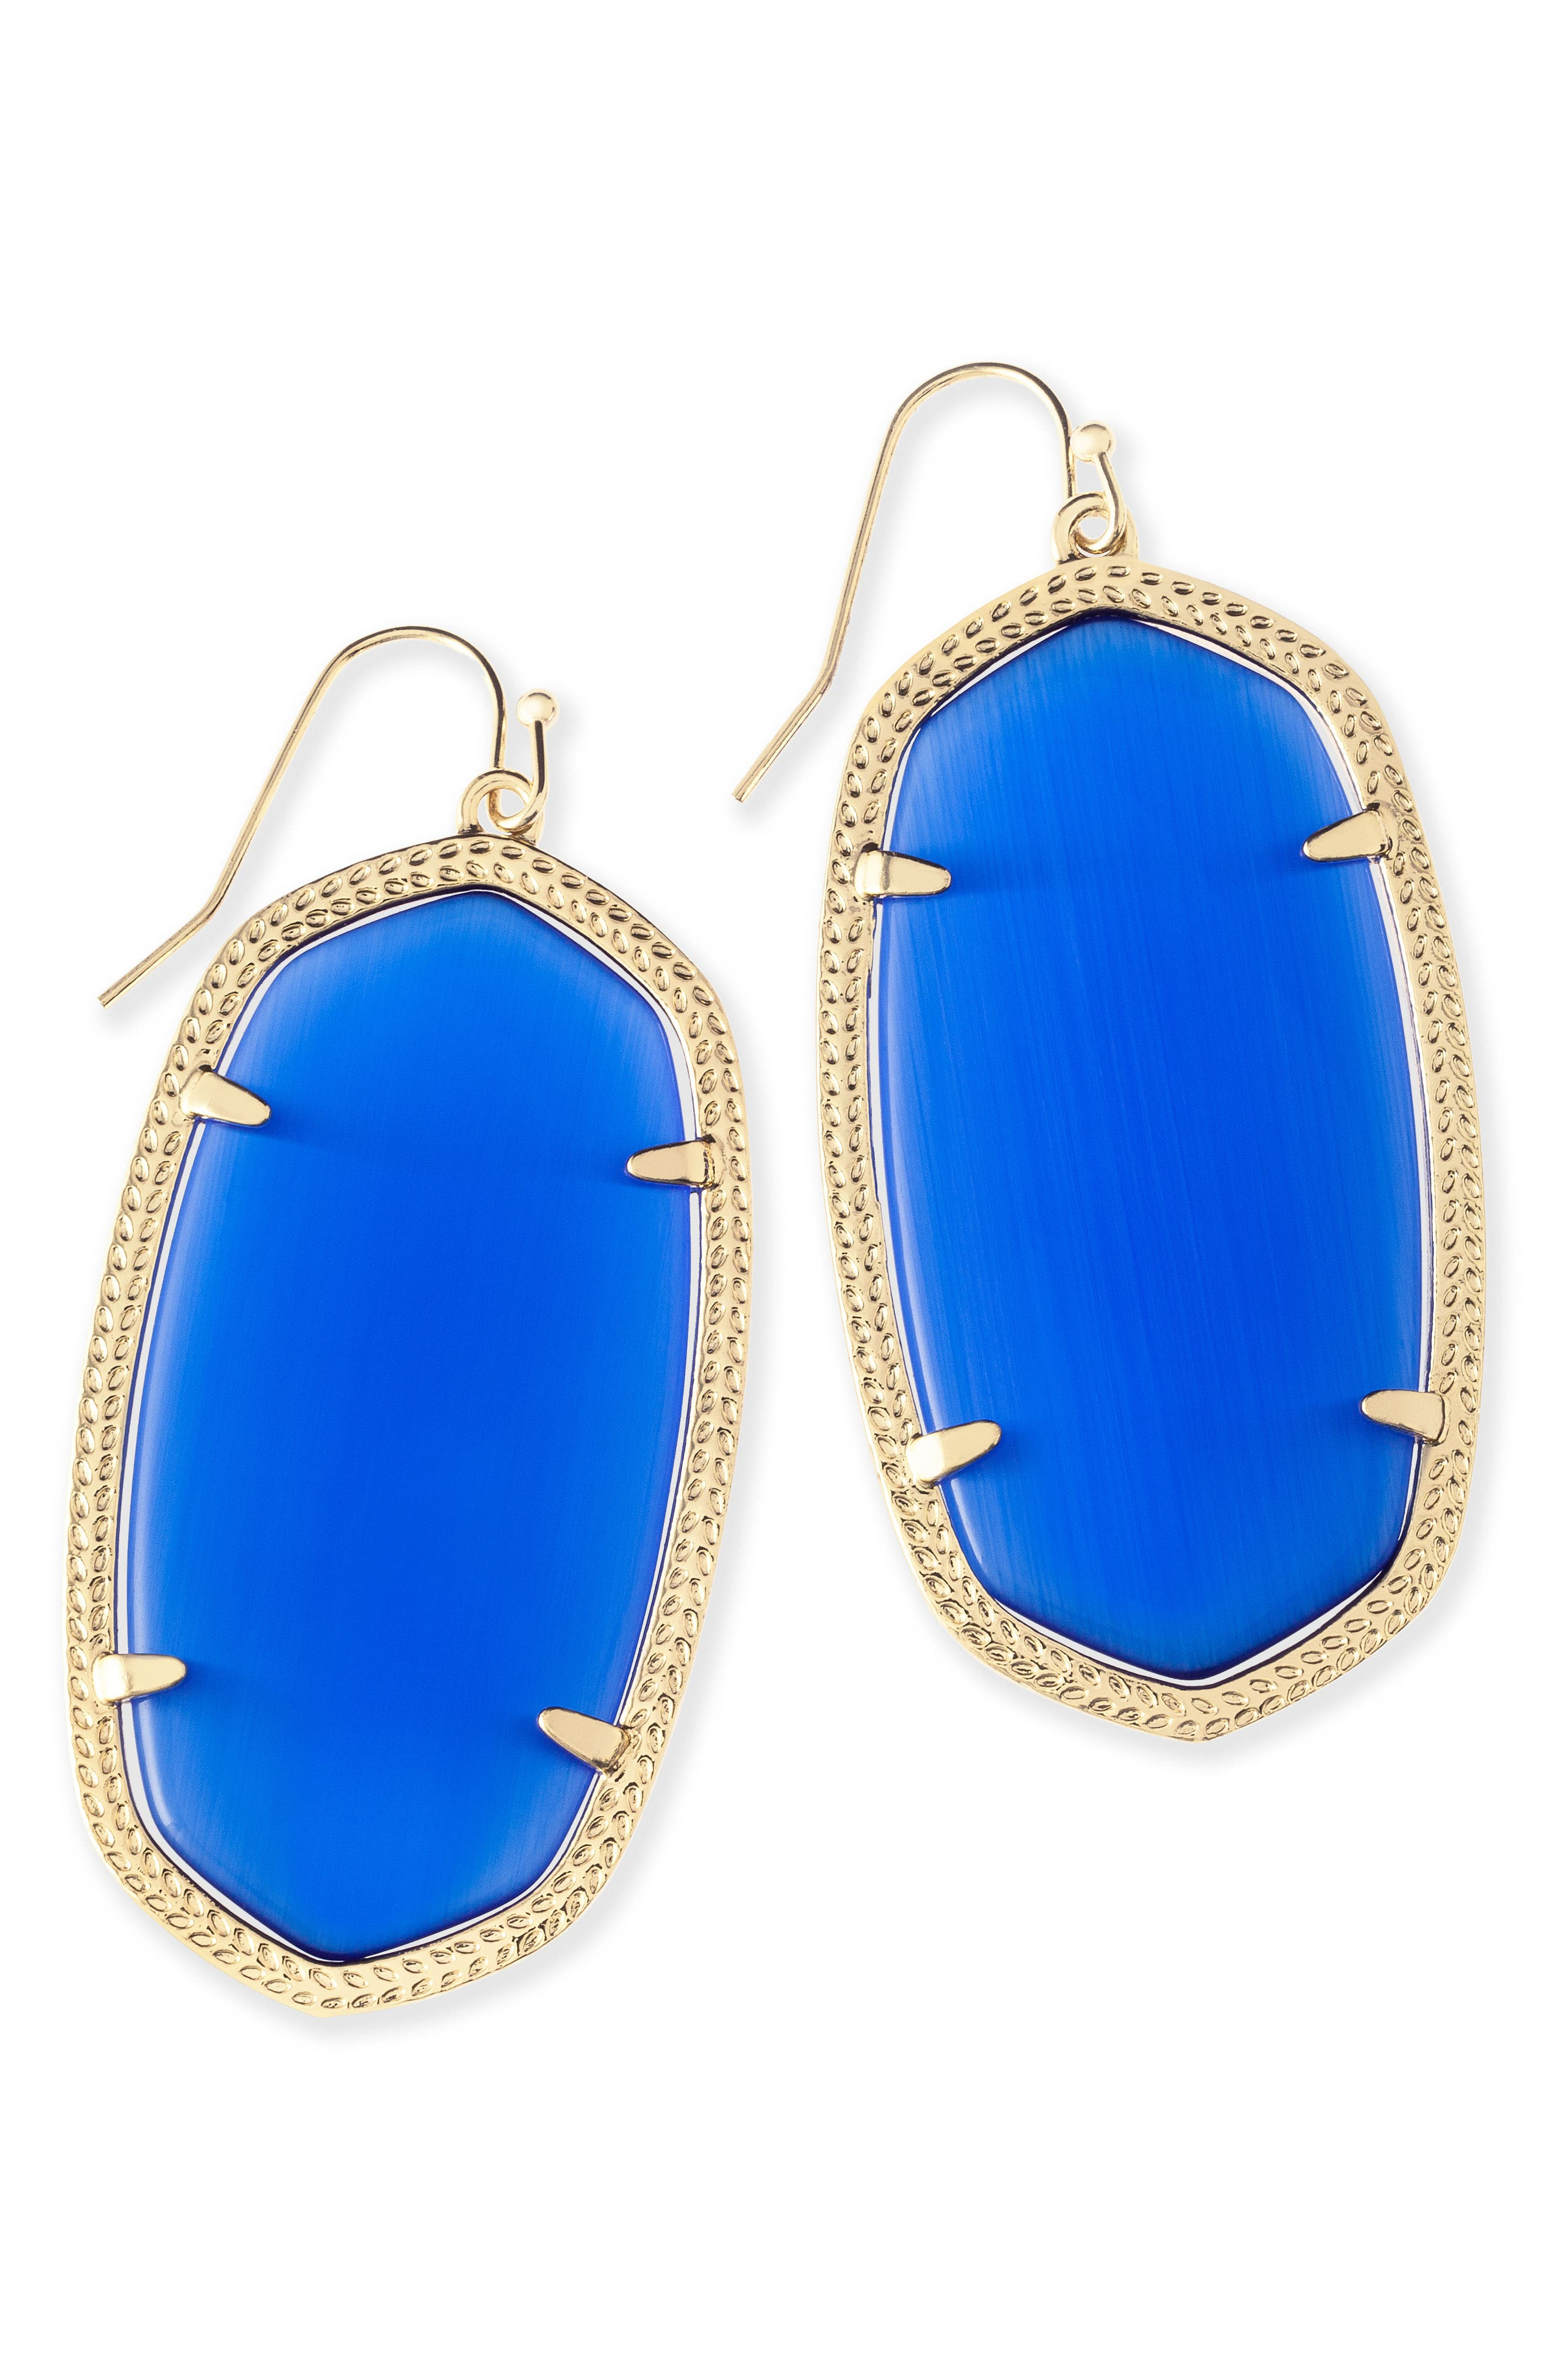 Danielle - Large Oval Statement Earrings,                             Alternate thumbnail 108, color,